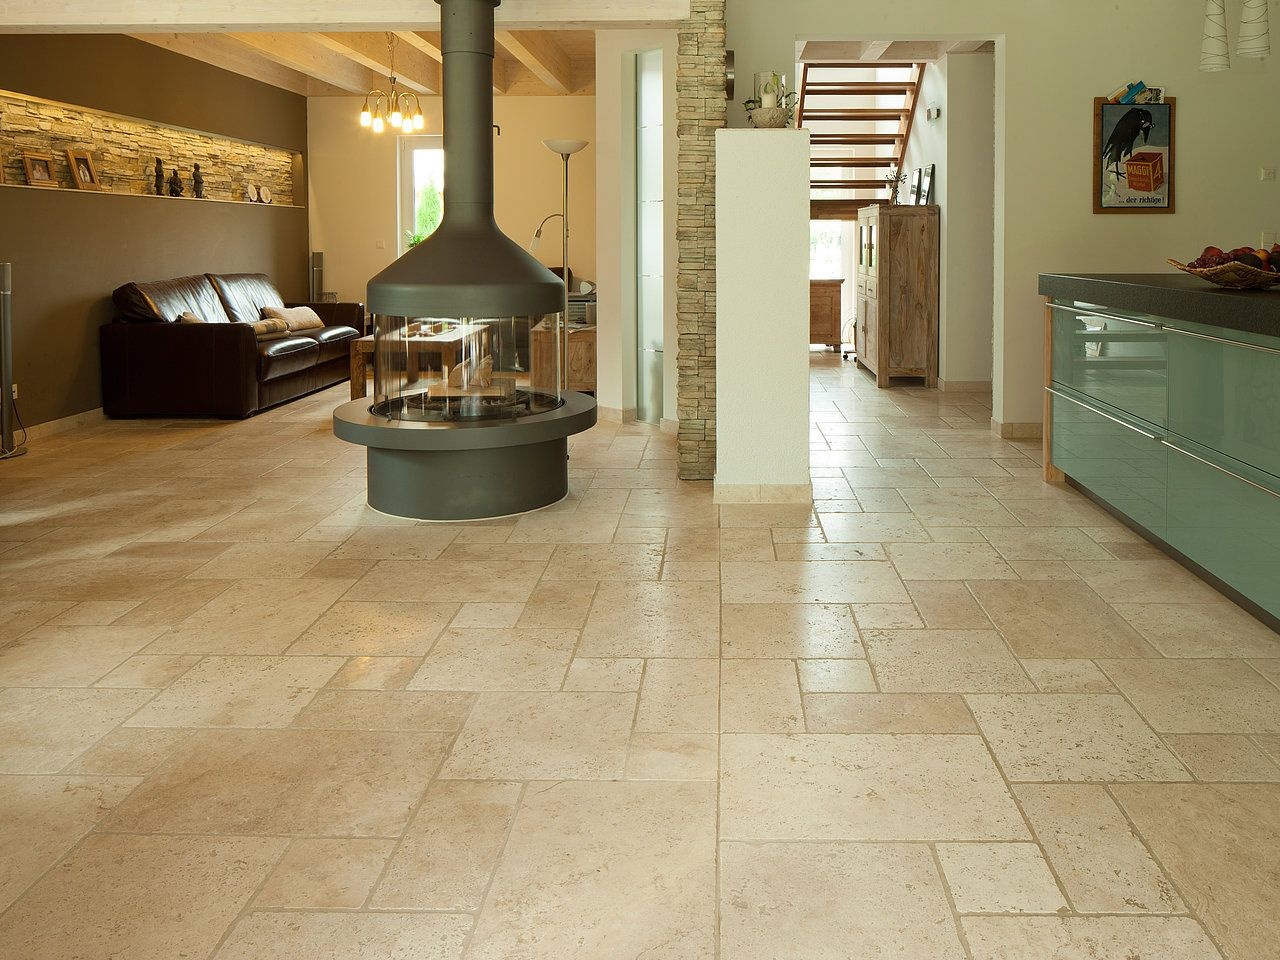 Image result for natural stone tiles floor